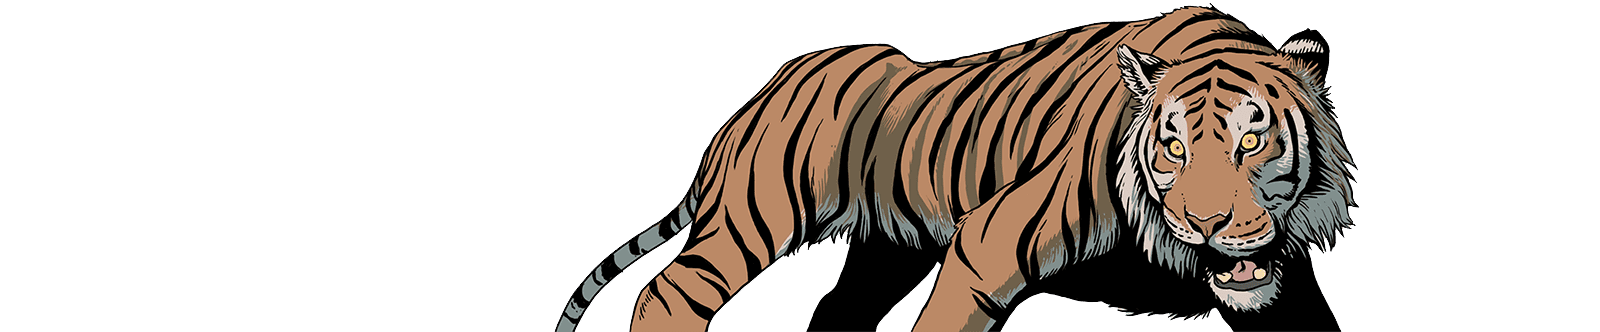 illustrated tiger in a cautious stance looking to left